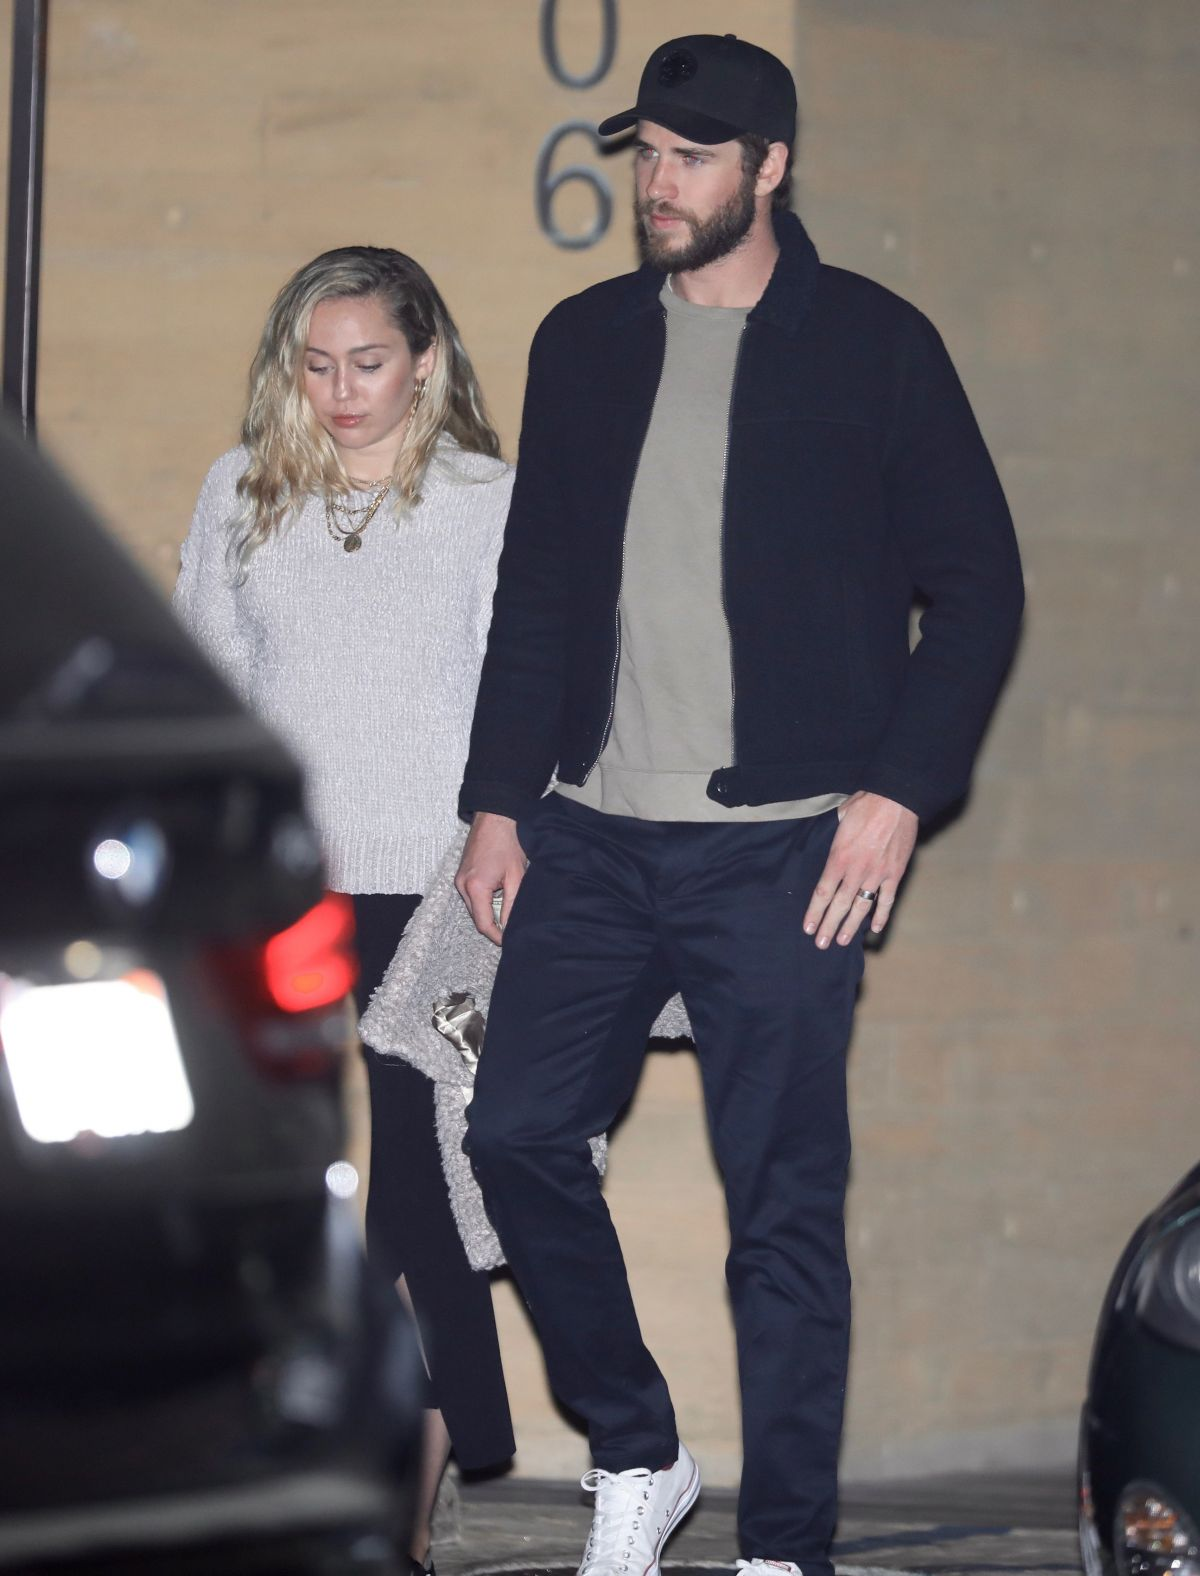 miley cyrus liam hemsworth leaving after a romantic dinner in la 6